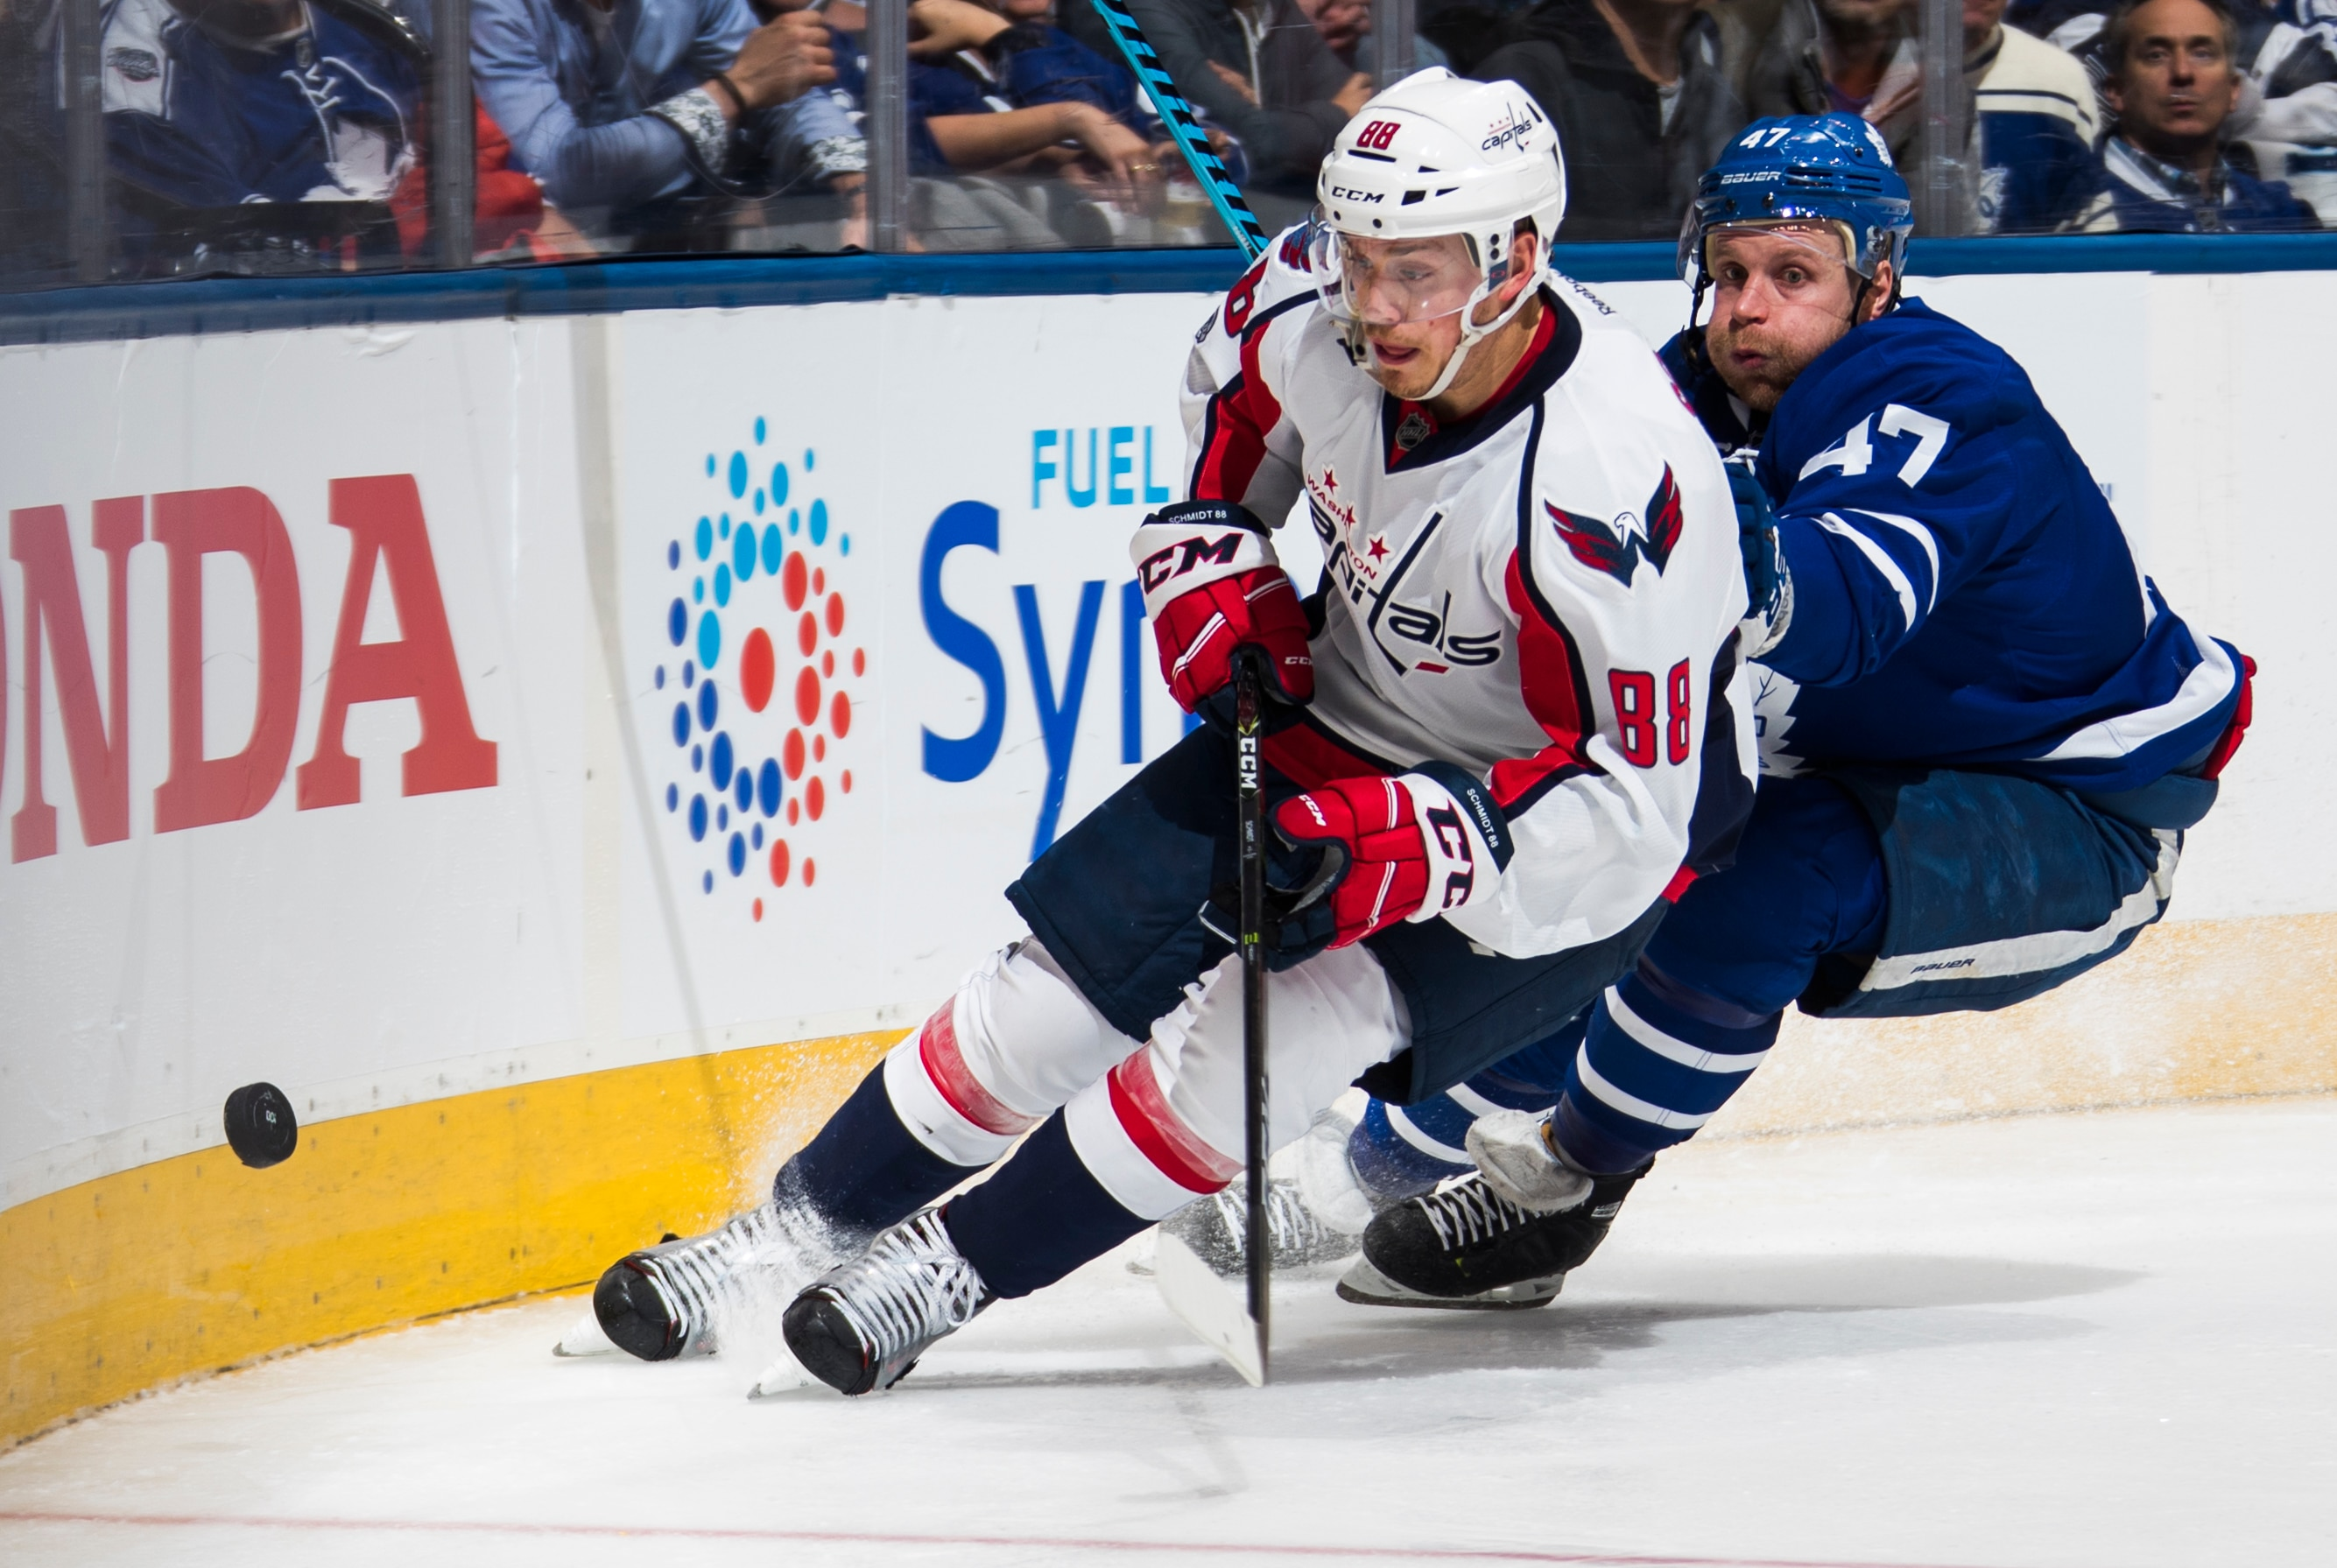 Nate-schmidt-toronto-maple-leafs-game-6-preview